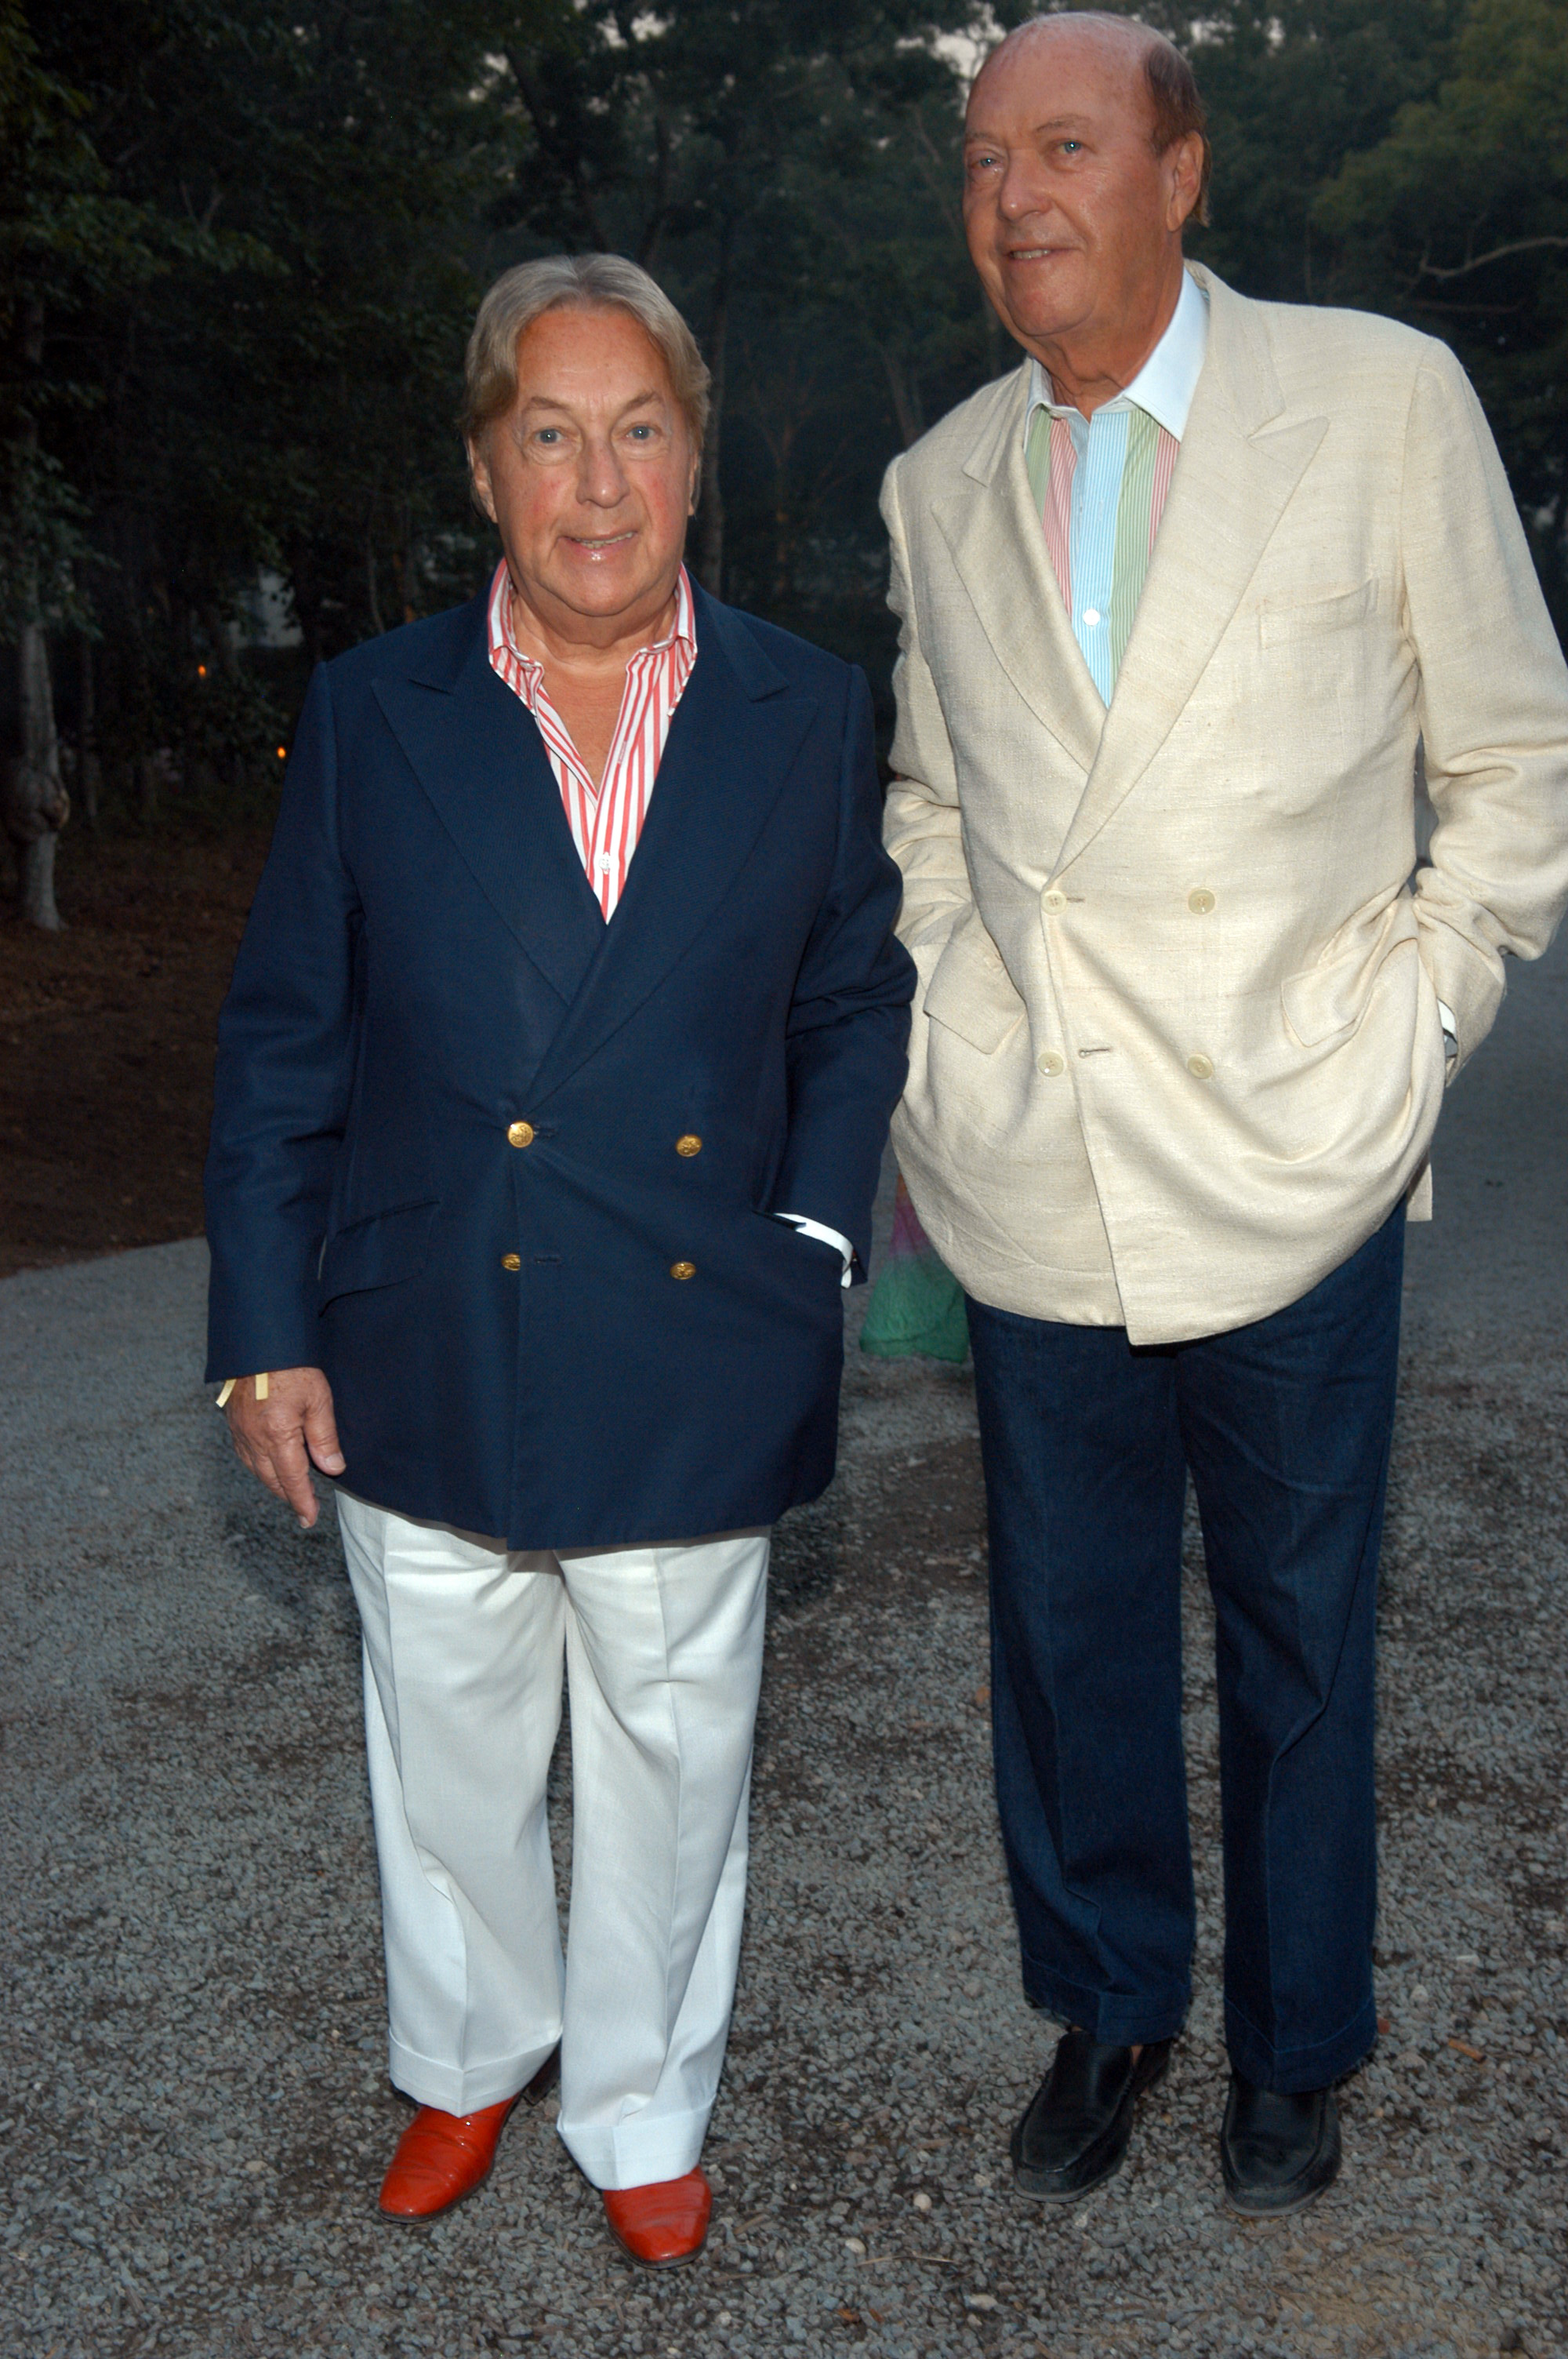 Arnold Scaasi (L) and Parker Ladd attend Watermill Center's 12th Annual Summer Benefit. The Center, founded by Robert Wilson in 1992, this summer hosted artists-in-residence from 32 countries who transformed the grounds for the Amazon-themed benefit.Watermill Centers 12th Annual Summer Benefit, Water Mill